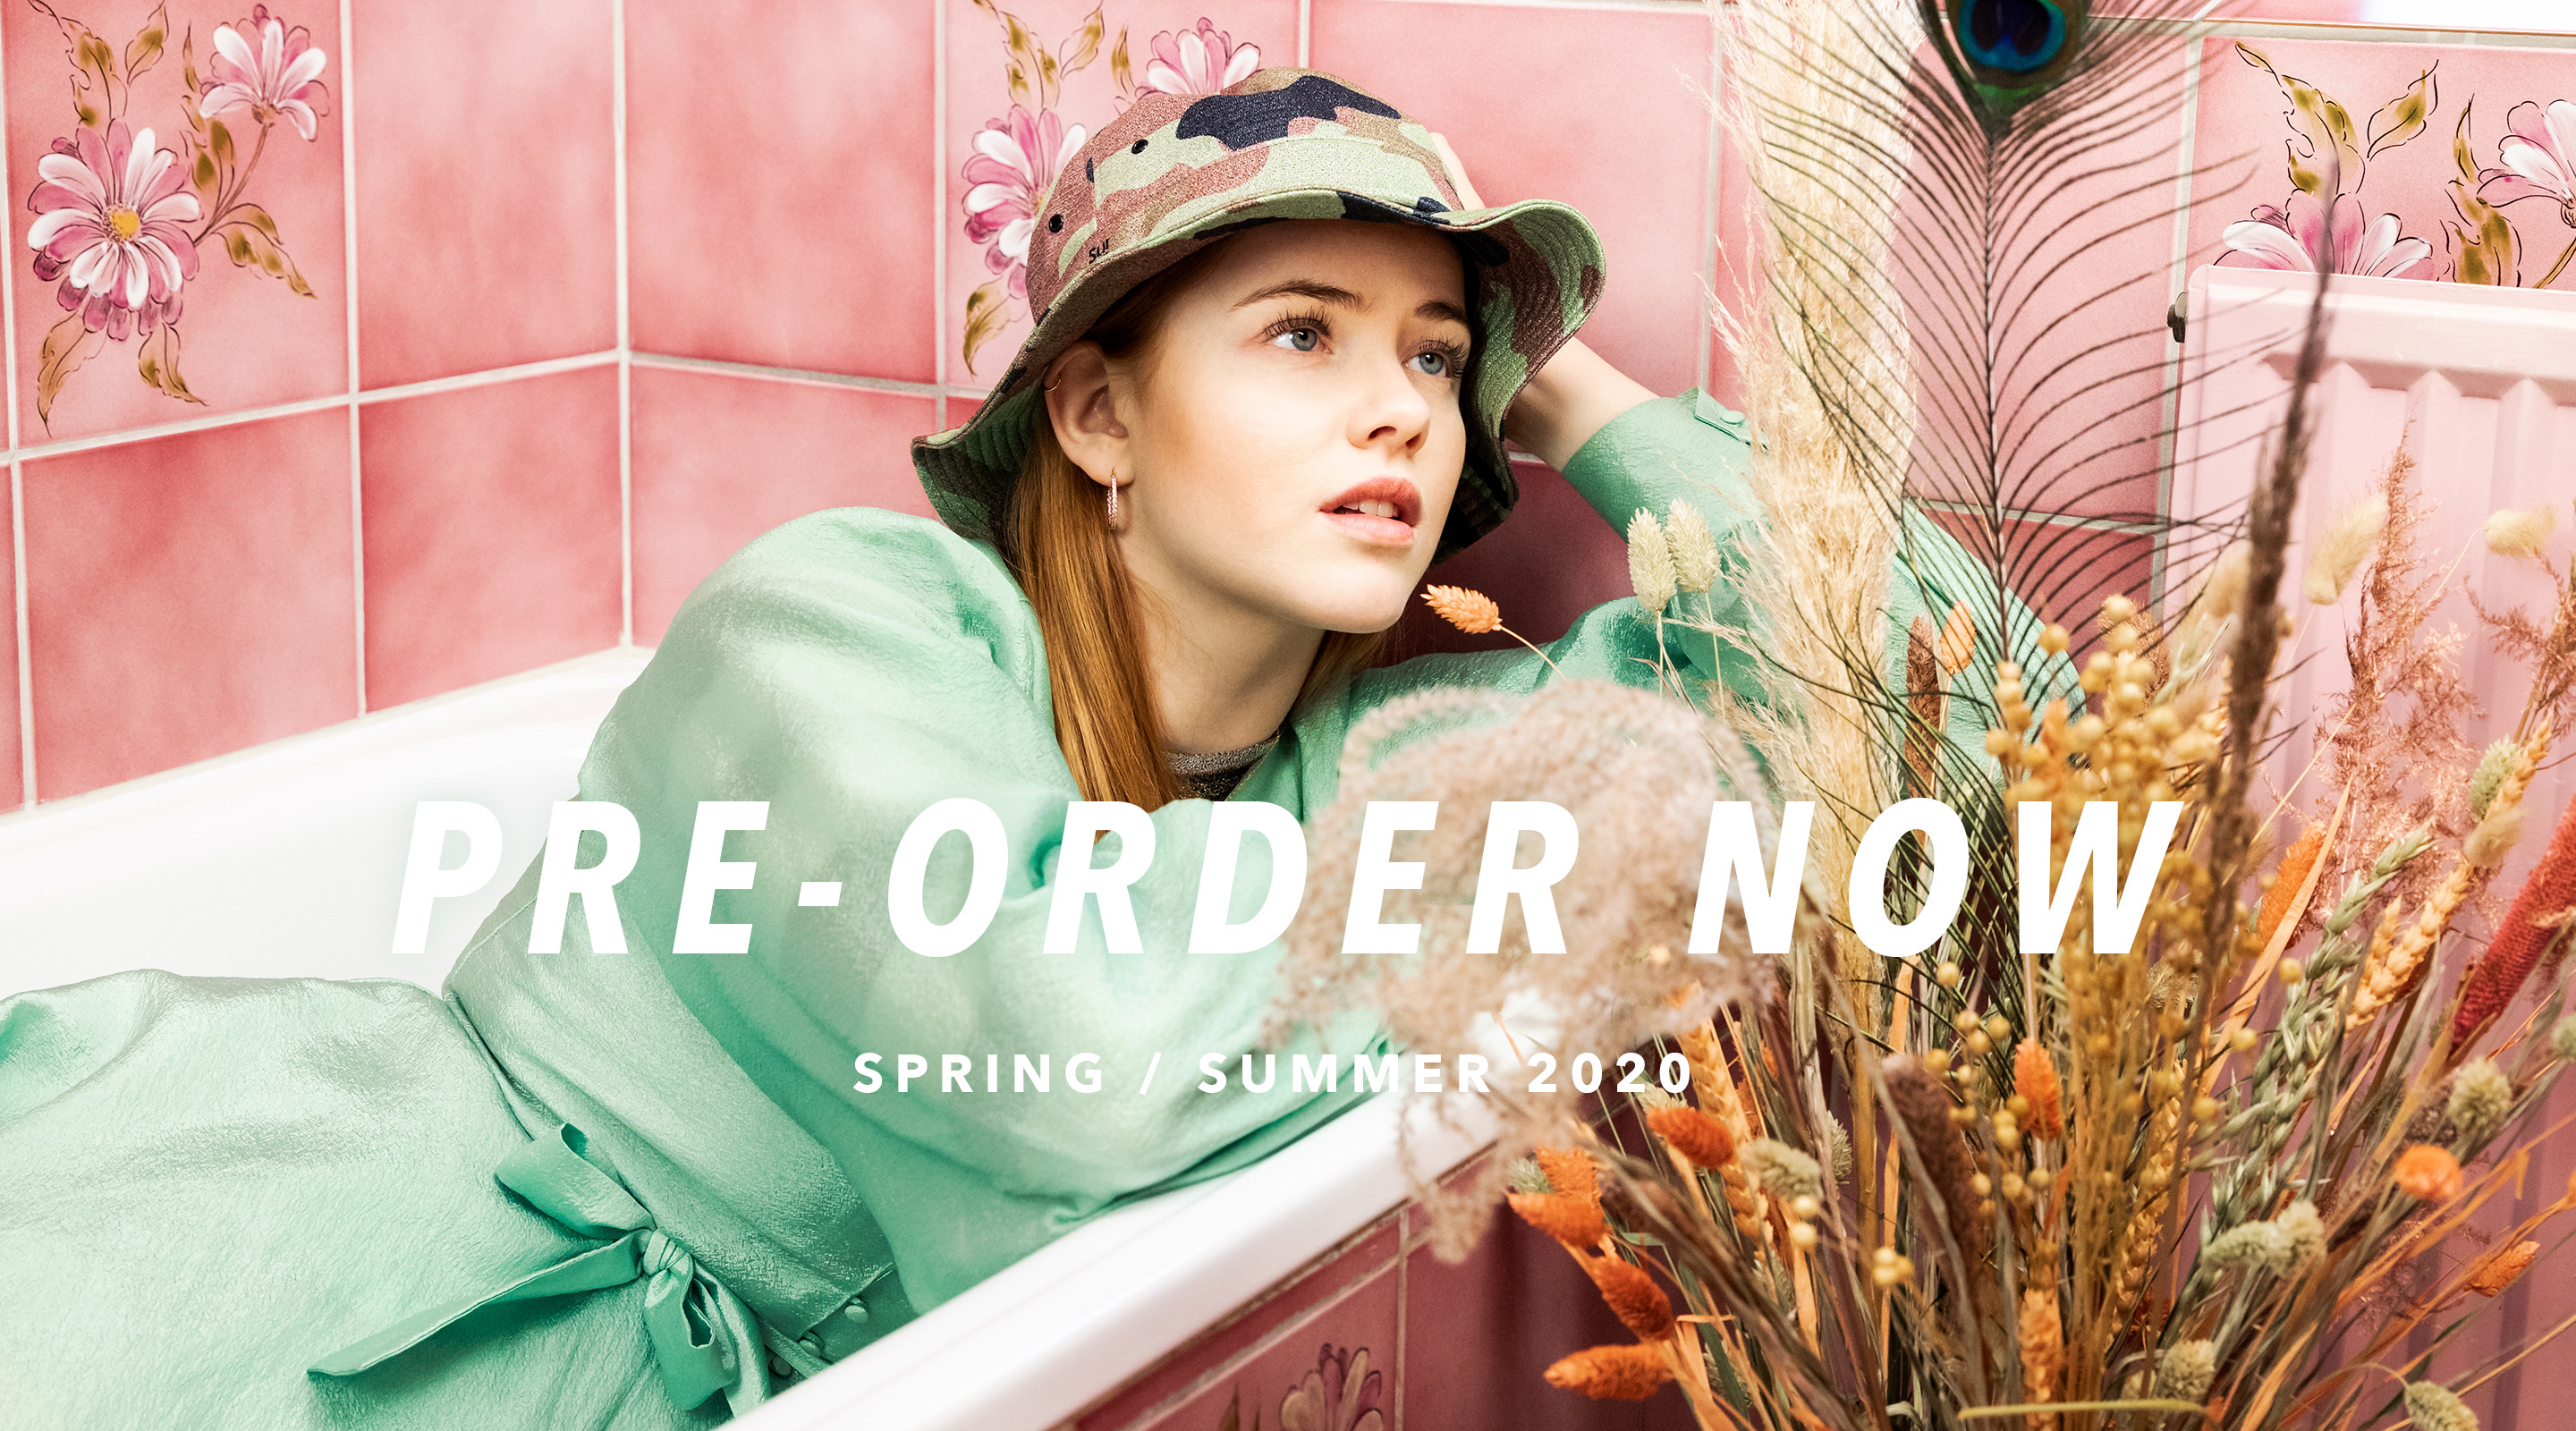 SA_do_you_remeber_spring_summer_2020_banner_pre-order